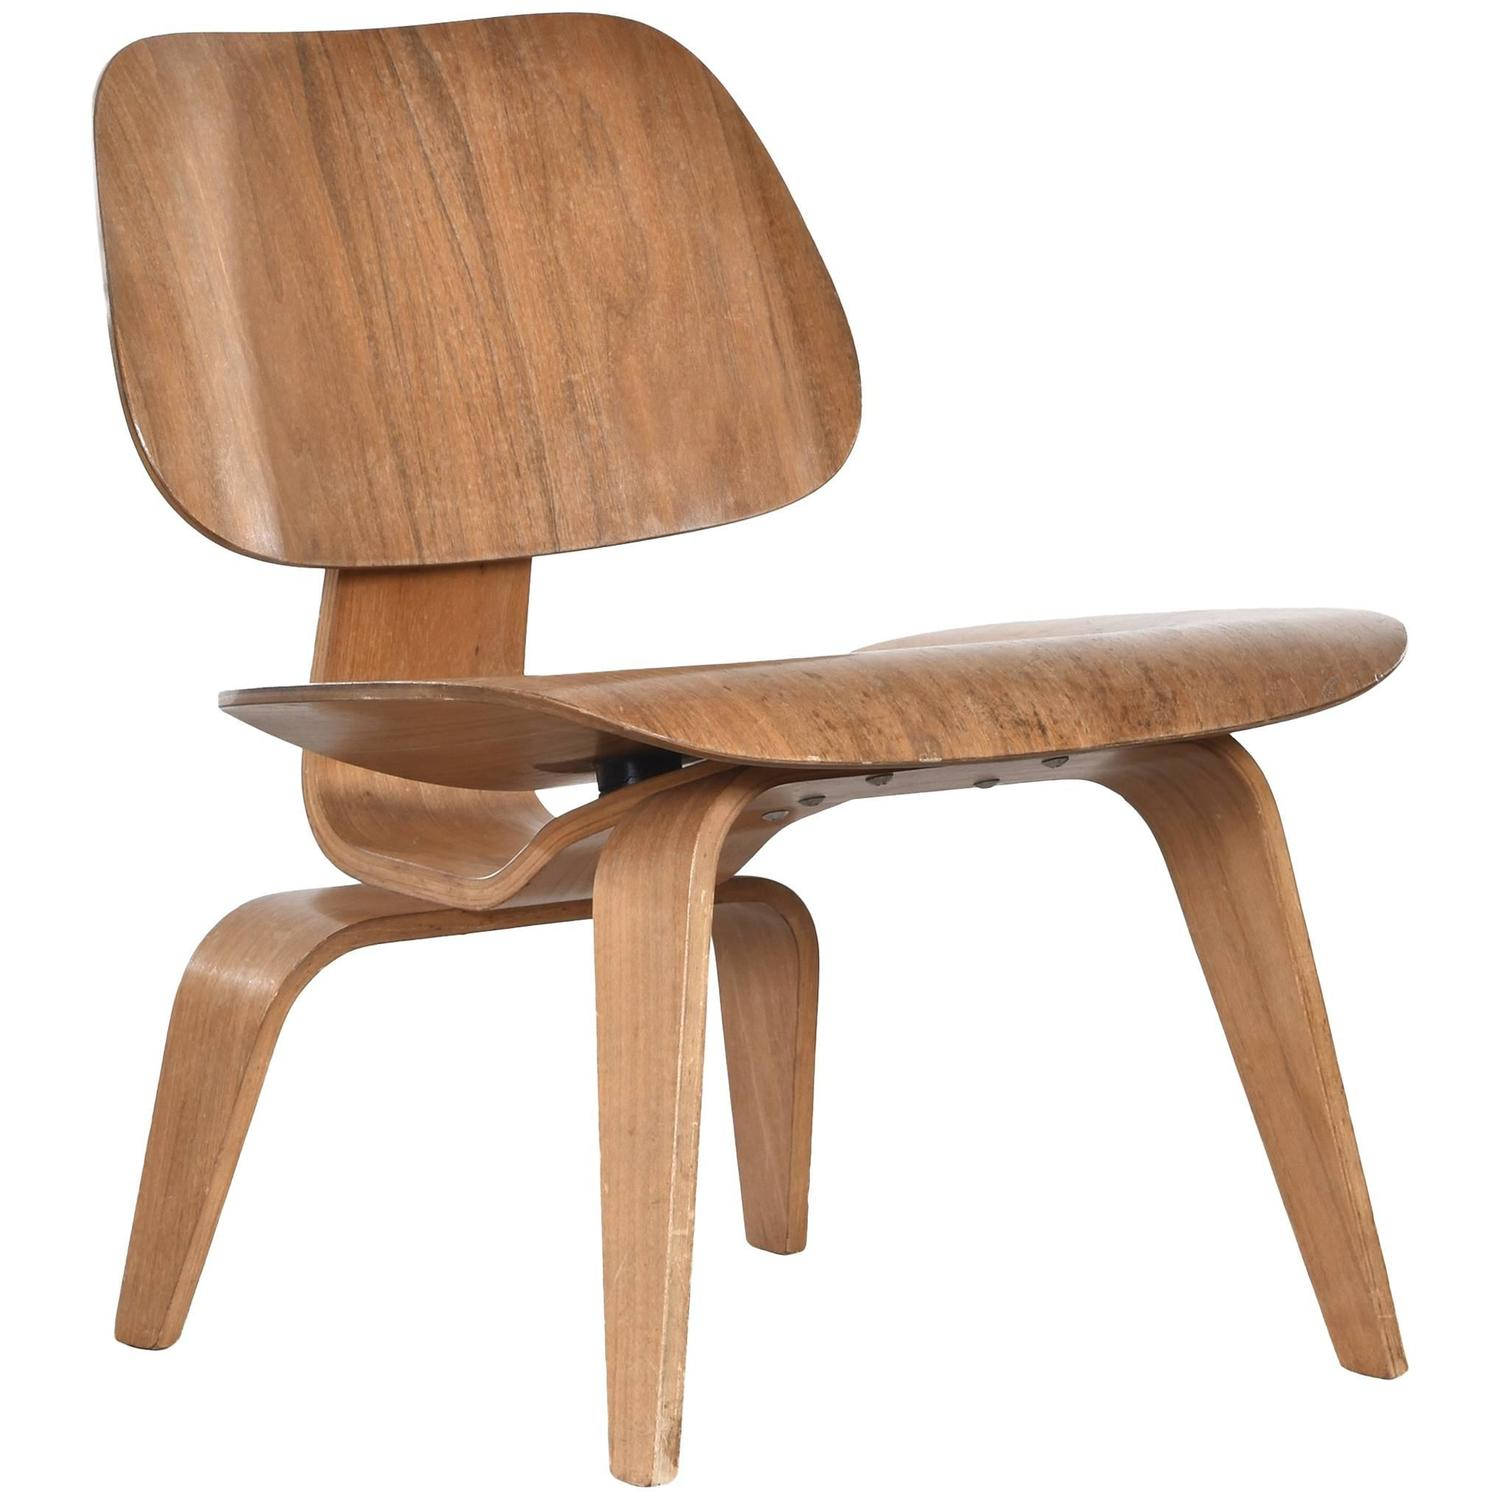 Awesome Eames Lcw Walnut Lounge Chair For Herman Miller At 1Stdibs Caraccident5 Cool Chair Designs And Ideas Caraccident5Info